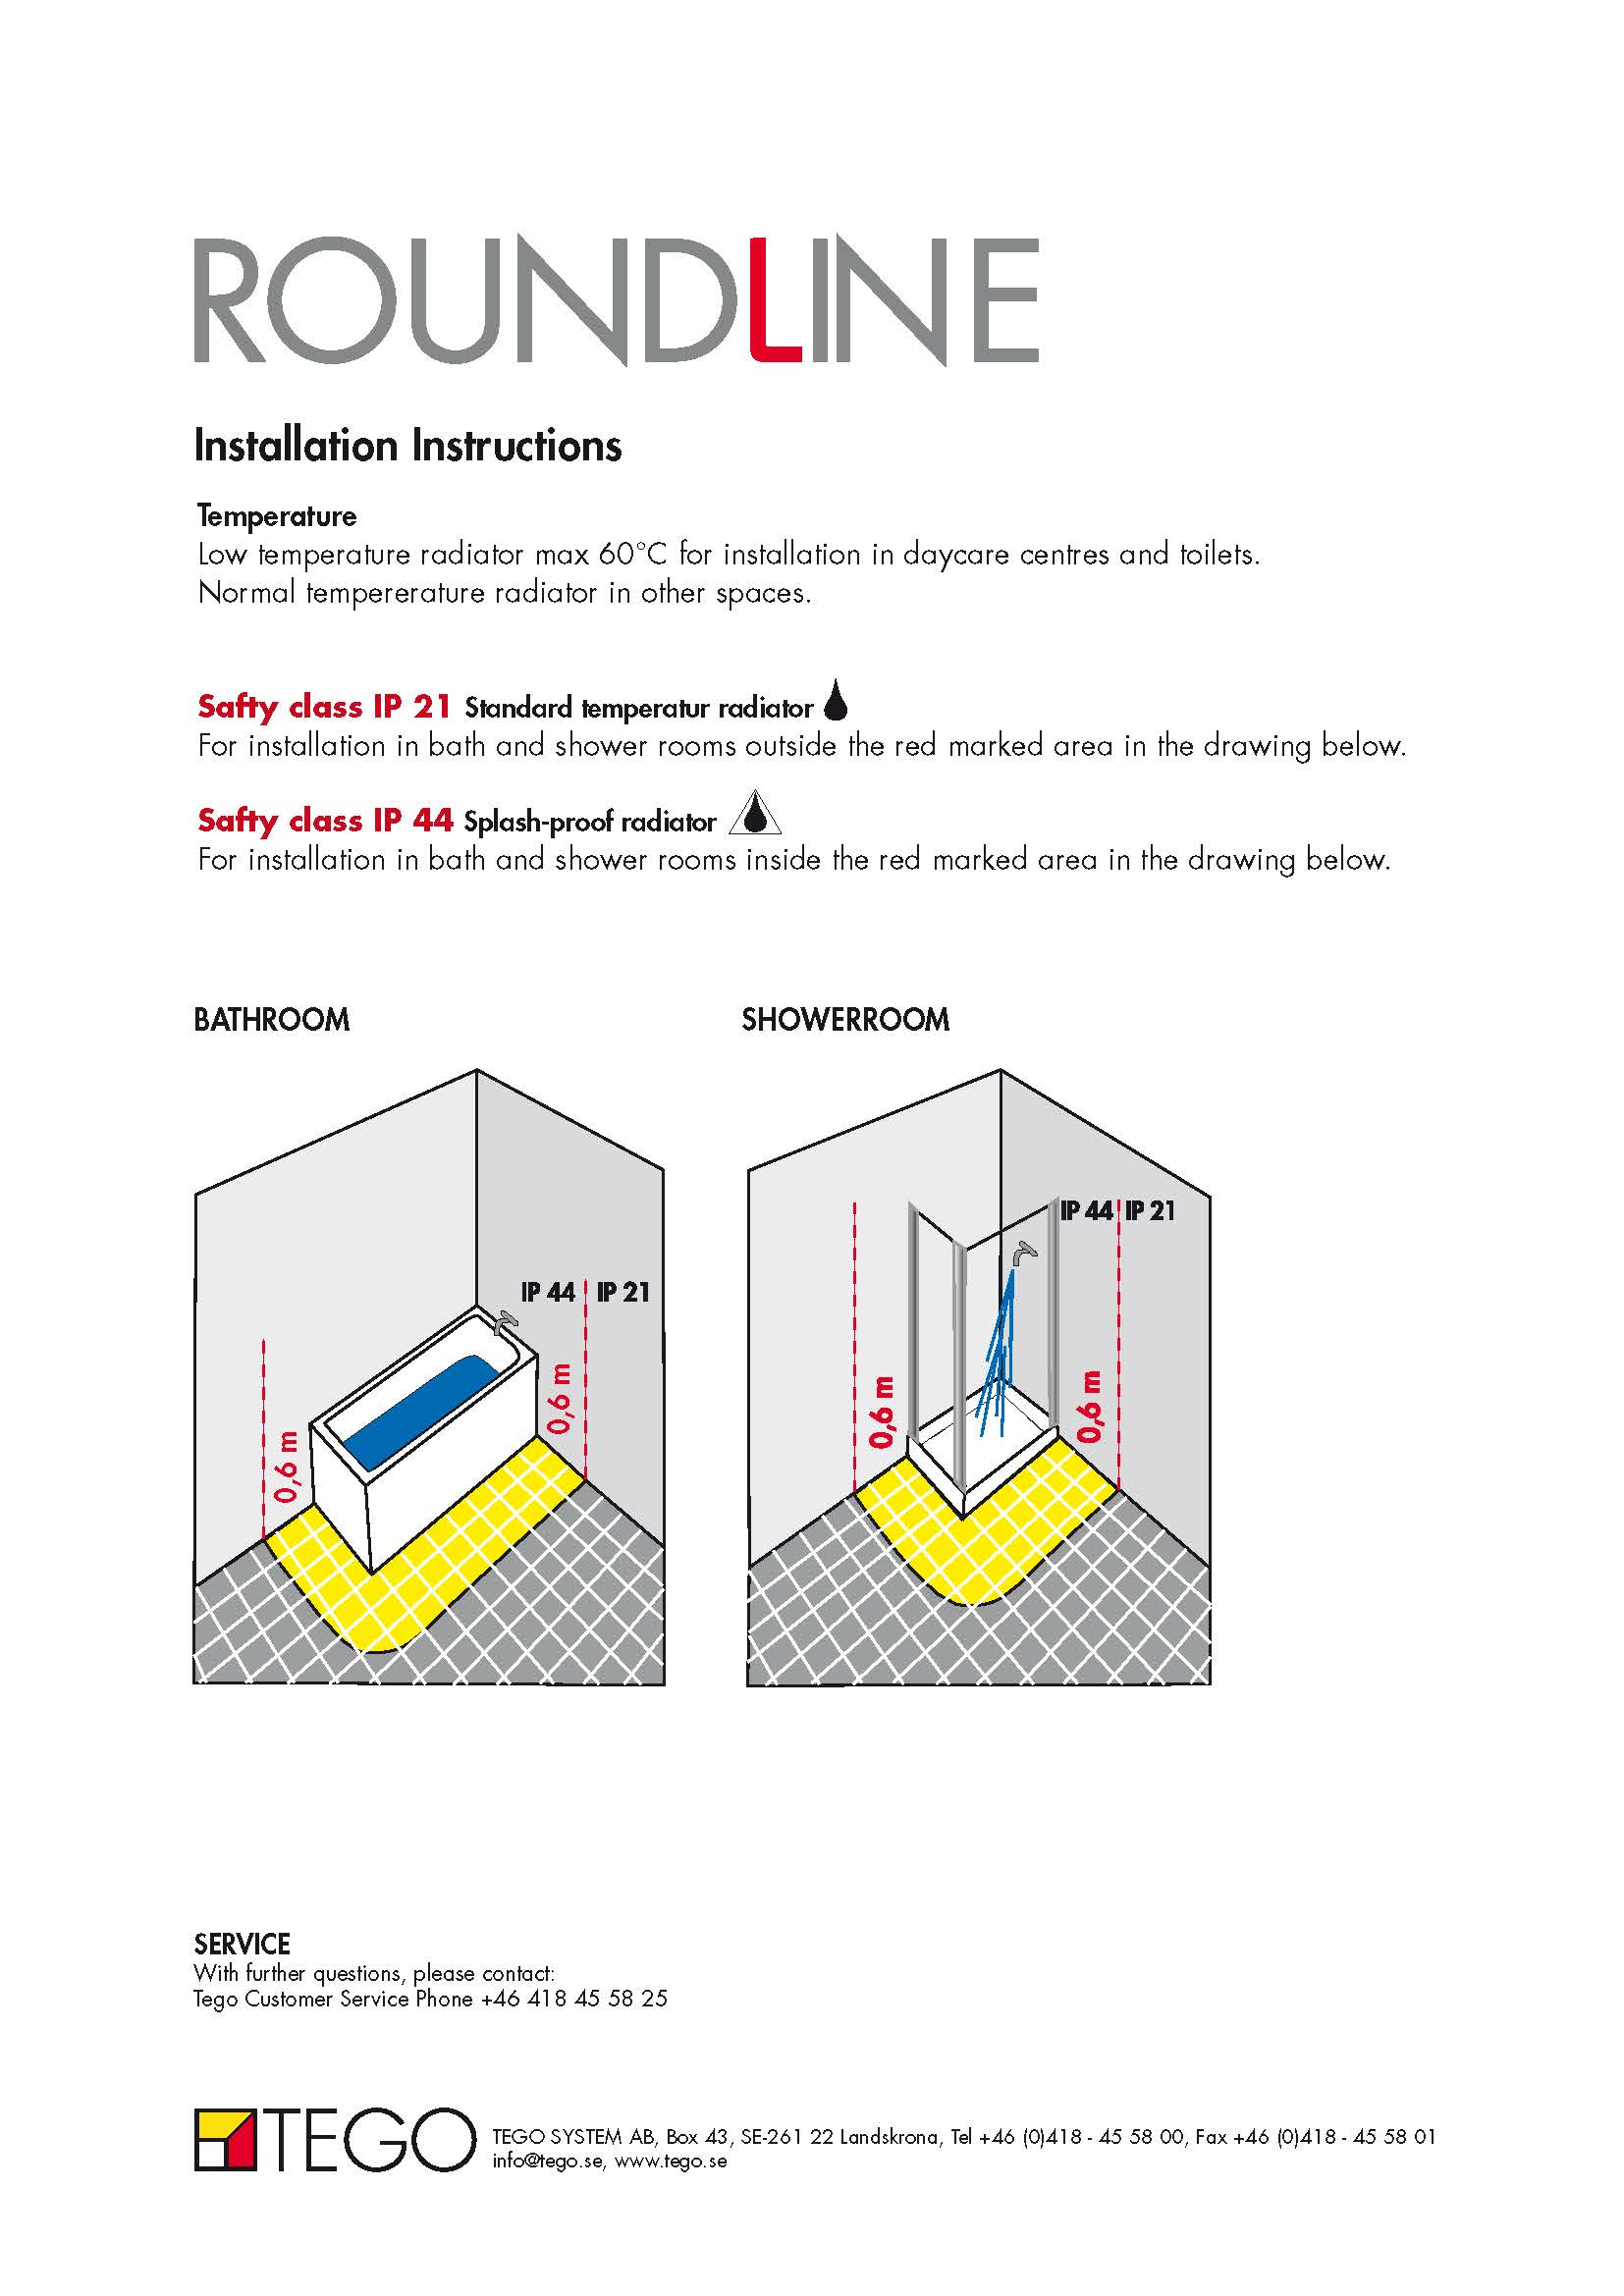 Roundline Manuals Brochures Mm 2 58t Wiring Diagram For Thermostat Mounting Instructions